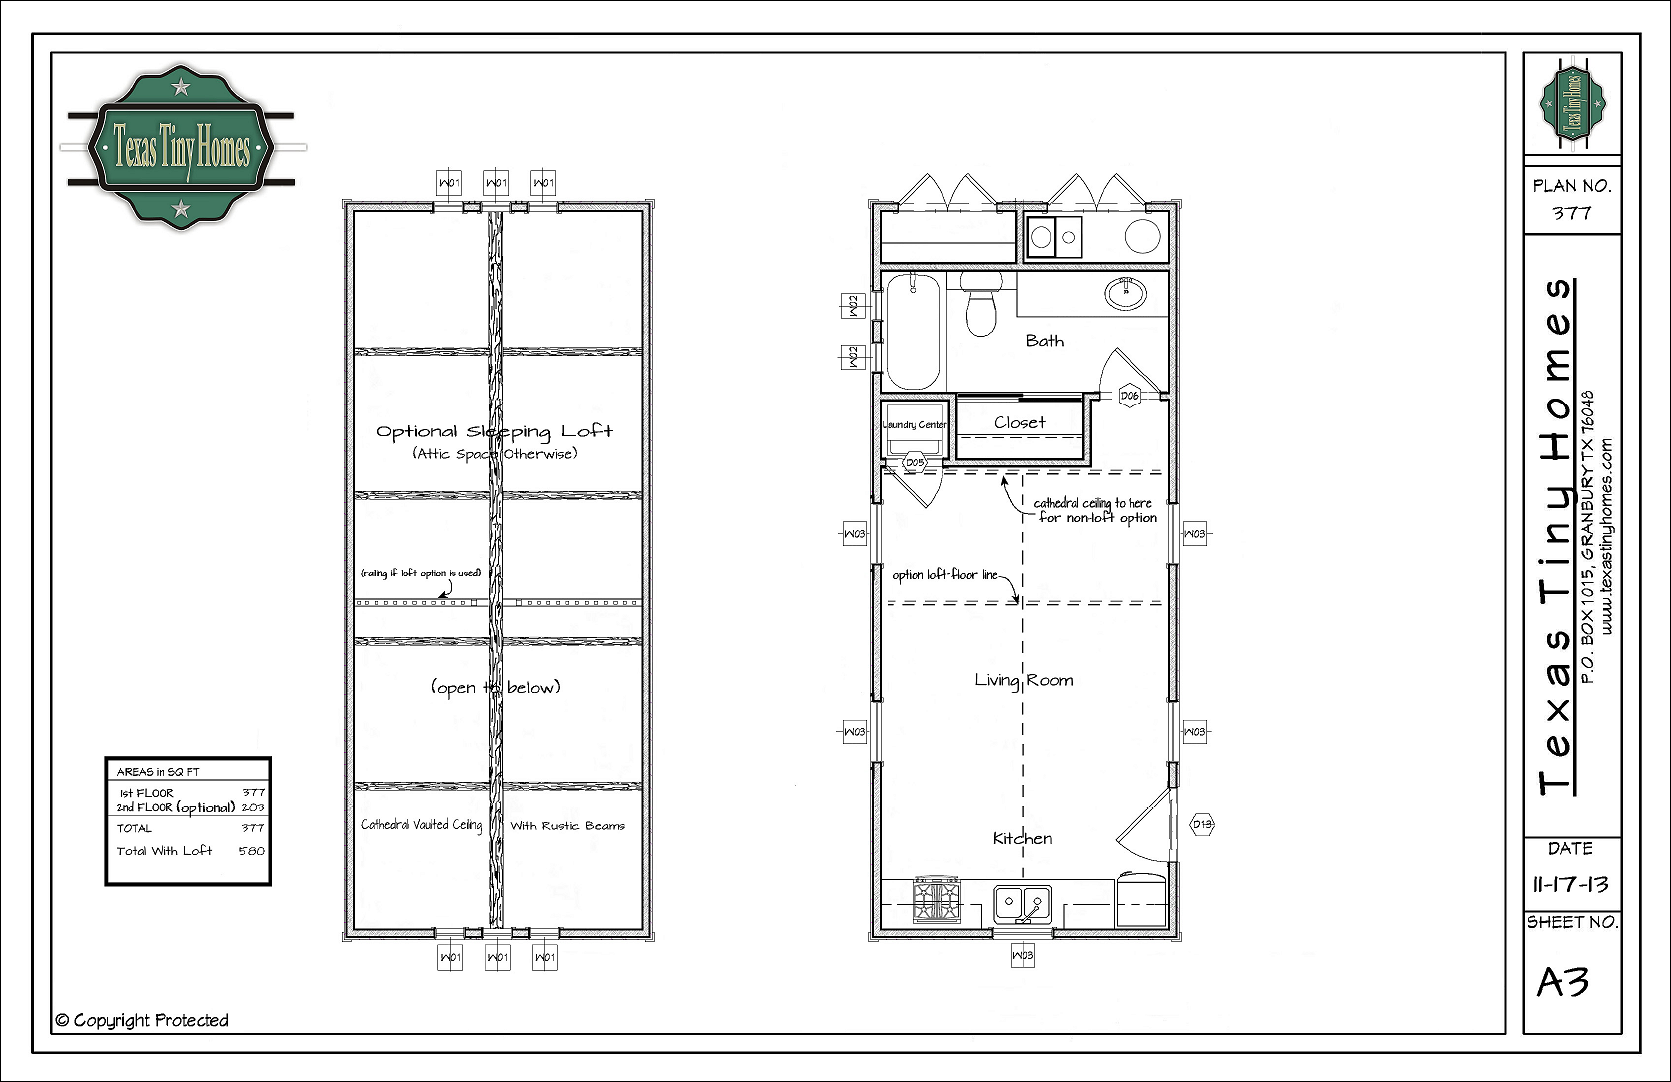 Floor Plan Presentation Sheet For Website Cheaptinyhomes Tiny House Plans Shipping Container Home Builders Cheap Tiny House